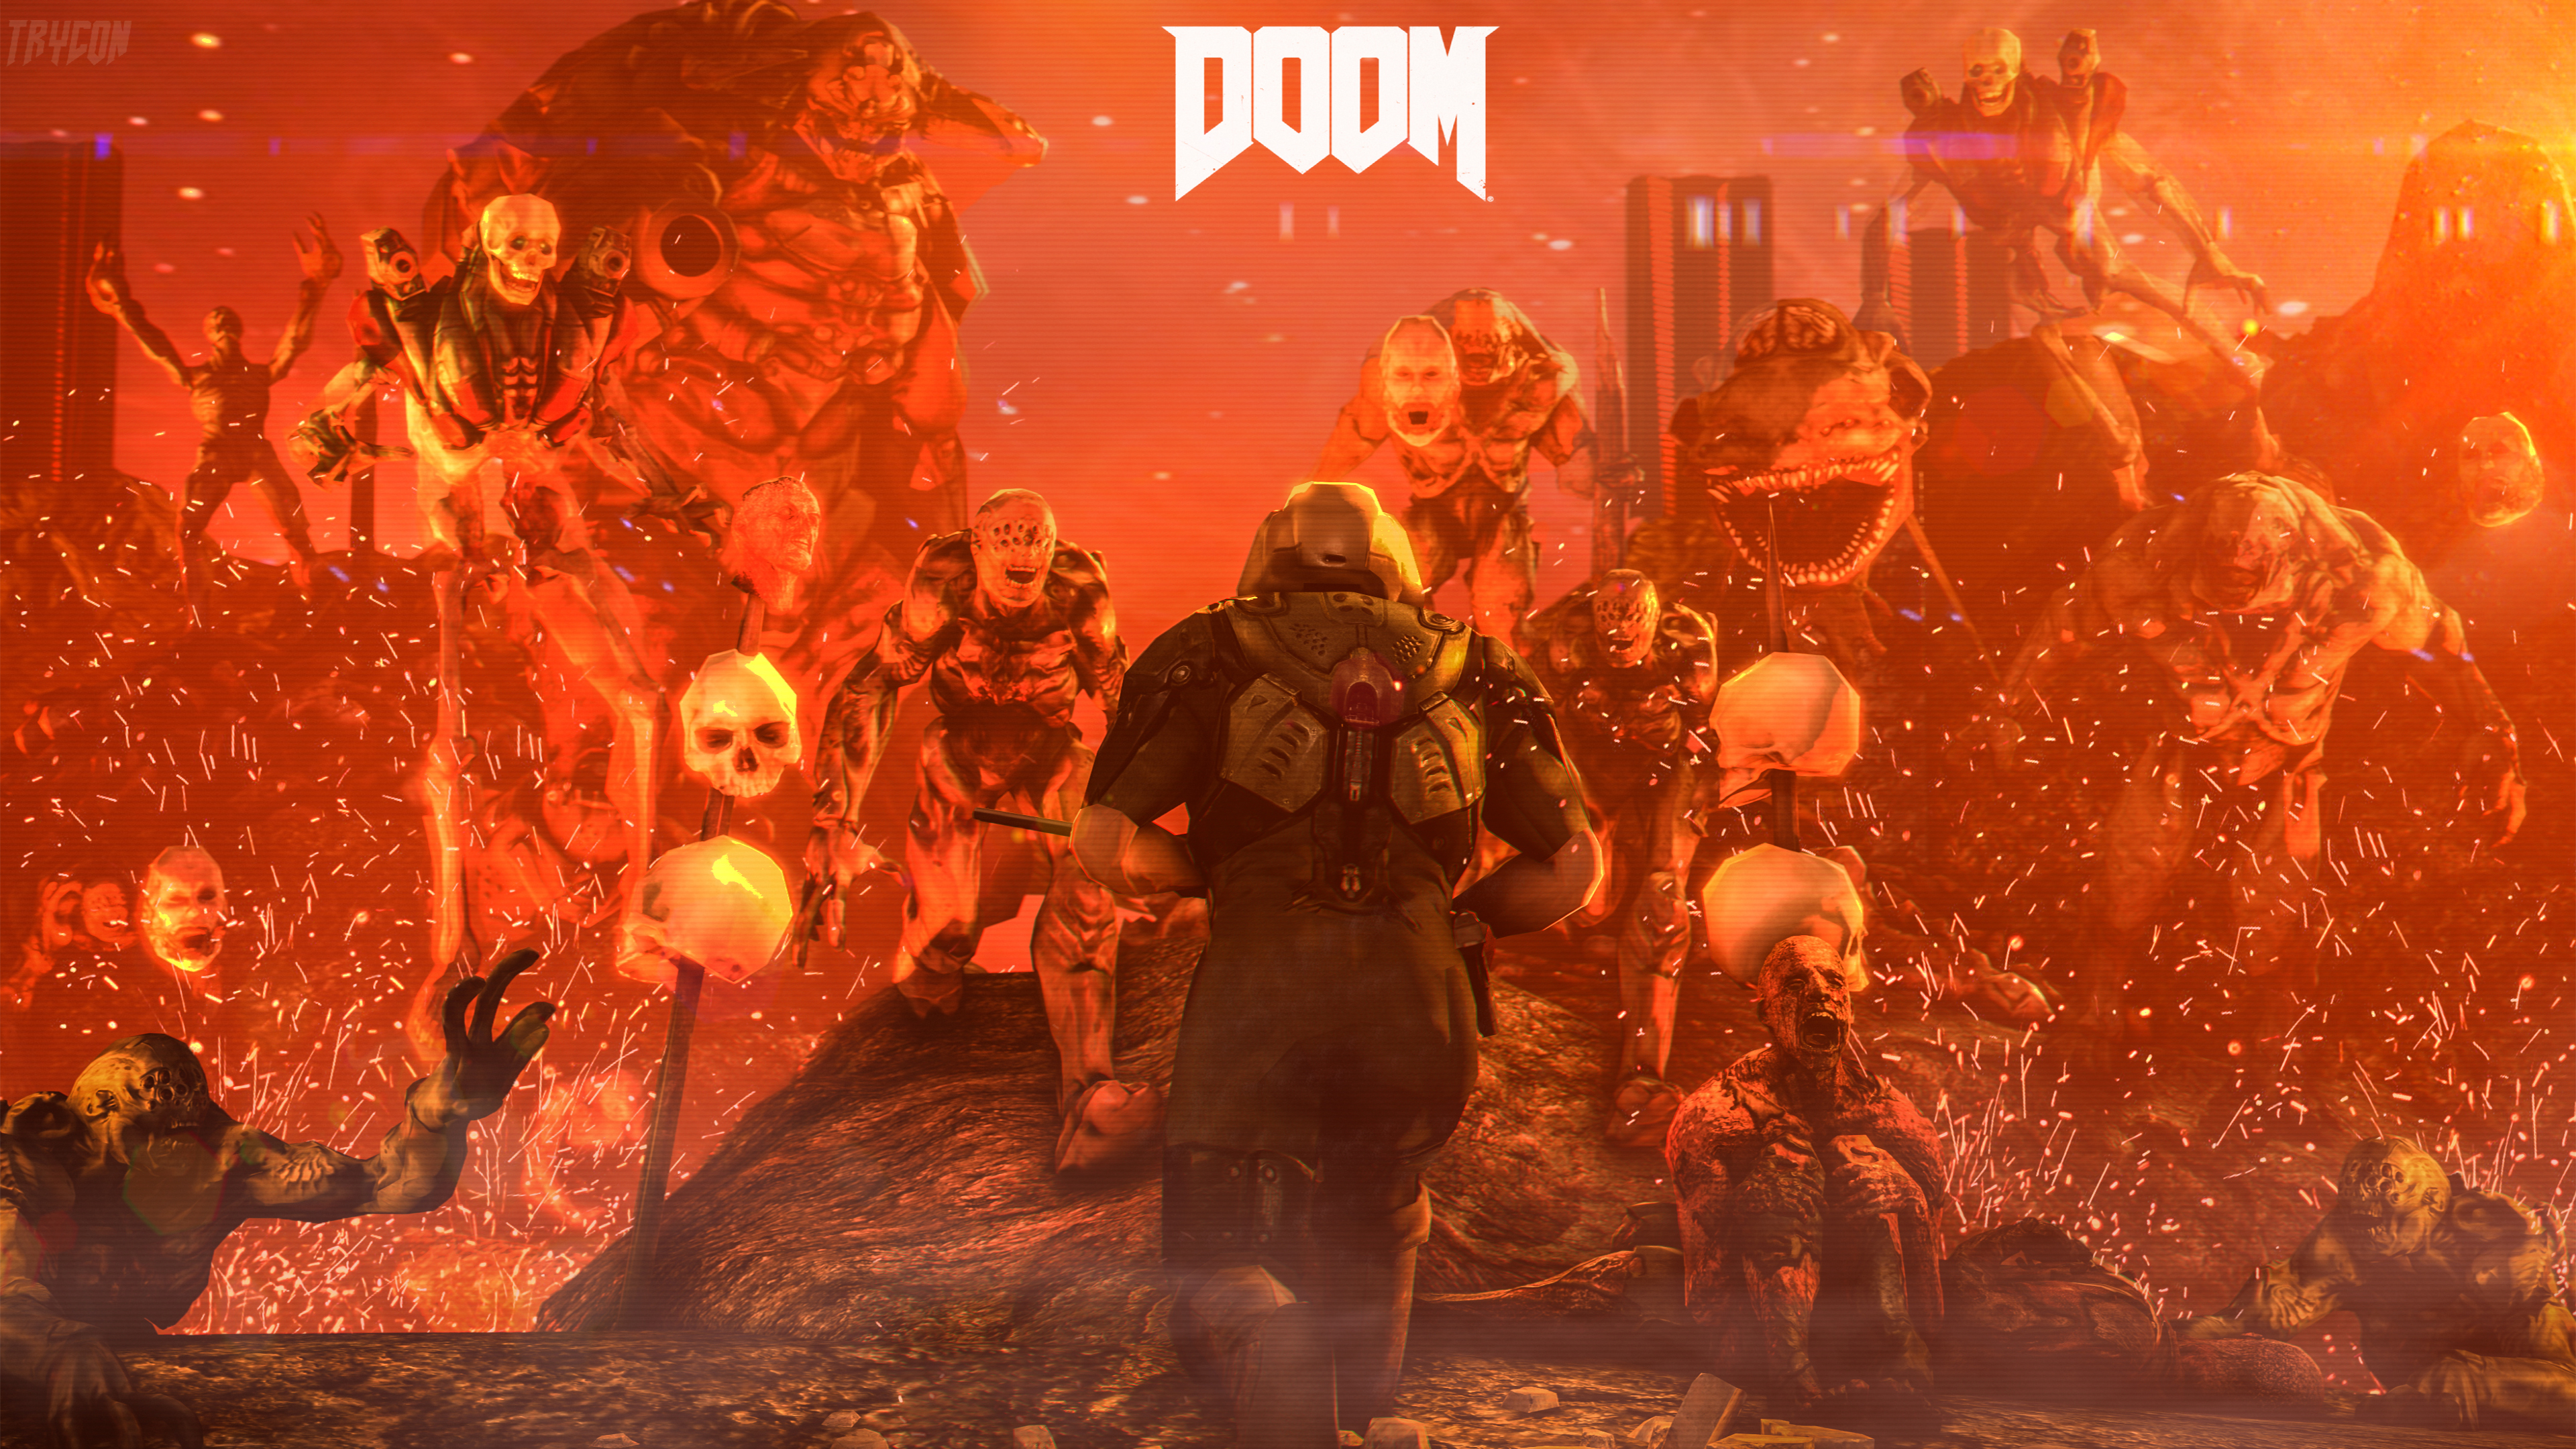 doom 4 digital art hd games 4k wallpapers images